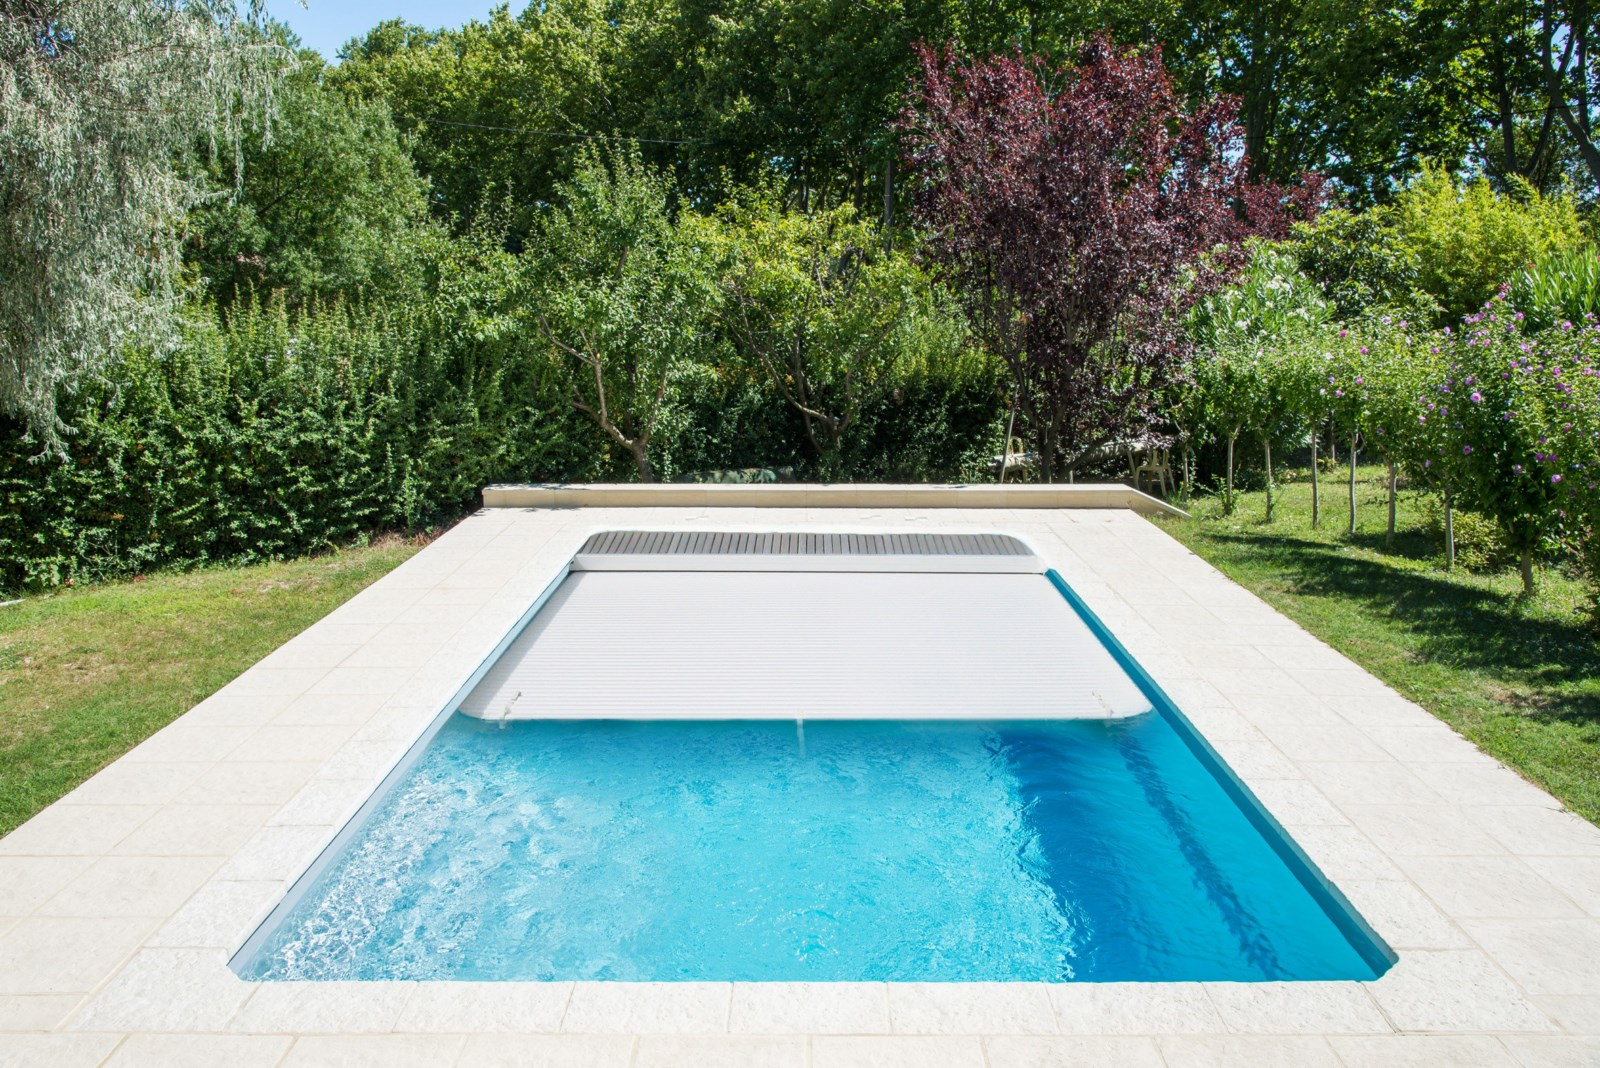 Piscine coque polyester rectangulaire mod le f ro avec for Piscine coque polyester